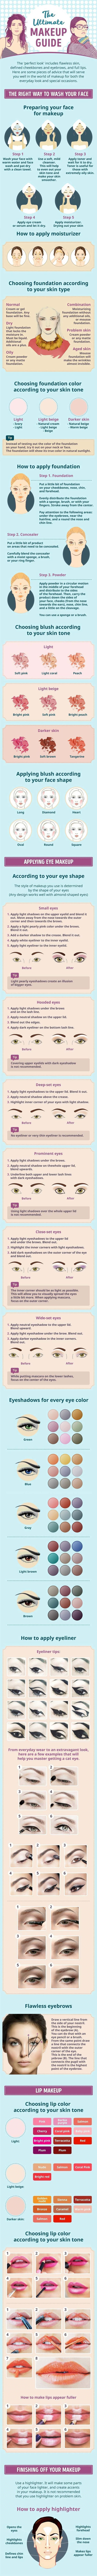 Best Makeup Tutorial for Teens -The Ultimate Makeup Guide You Can't Live Without - Easy Makeup Ideas for Beginners - Step by Step Tutorials for Foundation, Eye Shadow, Lipstick, Cheeks, Contour, Eyebrows and Eyes - Awesome Makeup Hacks and Tips for Simple DIY Beauty - Day and Evening Looks http://diyprojectsforteens.com/makeup-tutorials-teens